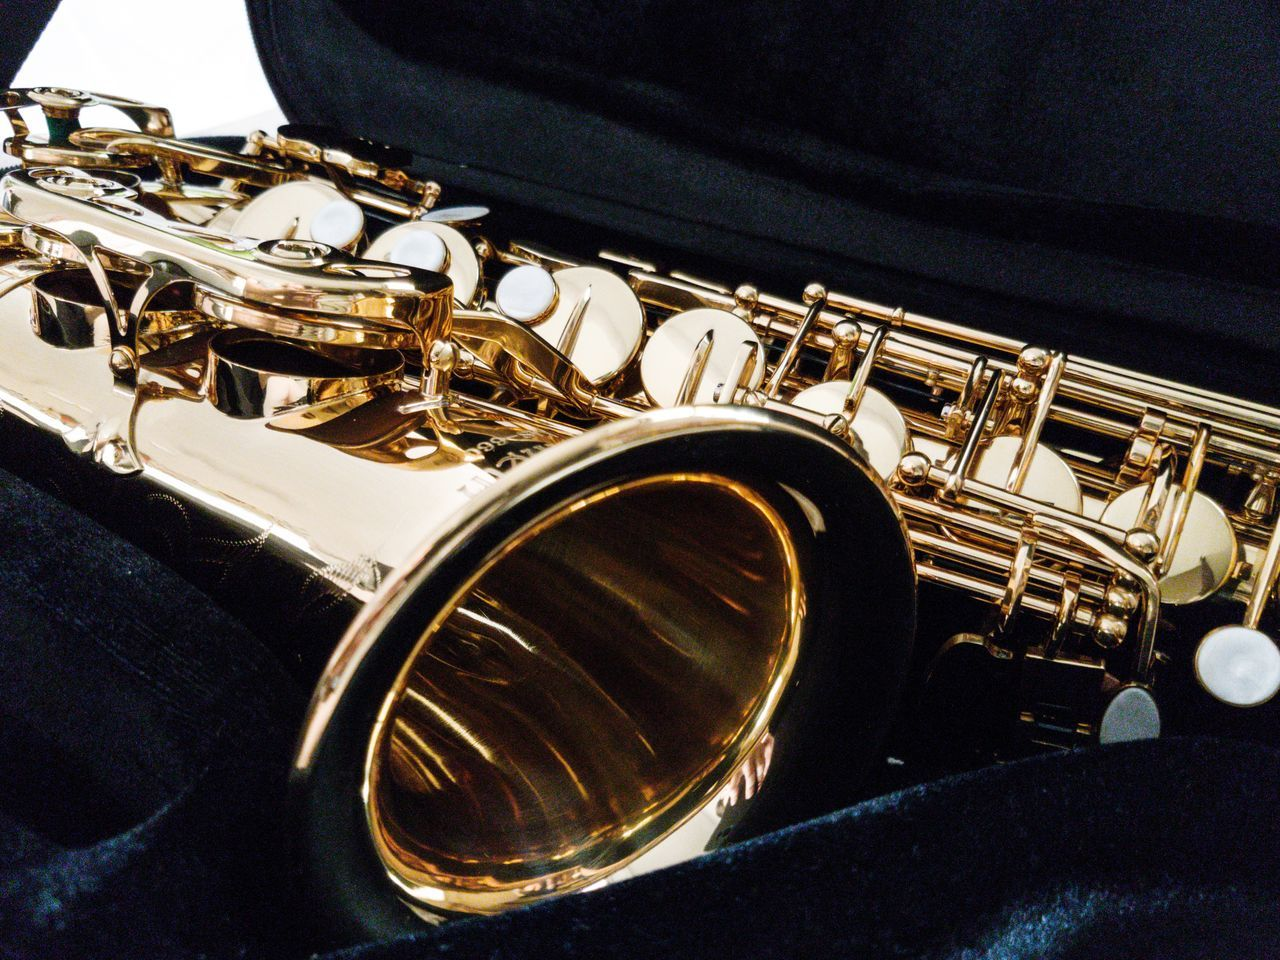 Music Musical Instrument Arts Culture And Entertainment No People Saxophone Classic Elegance Beautiful Close-up Music Melody Alto Saxophone Vintage Idea